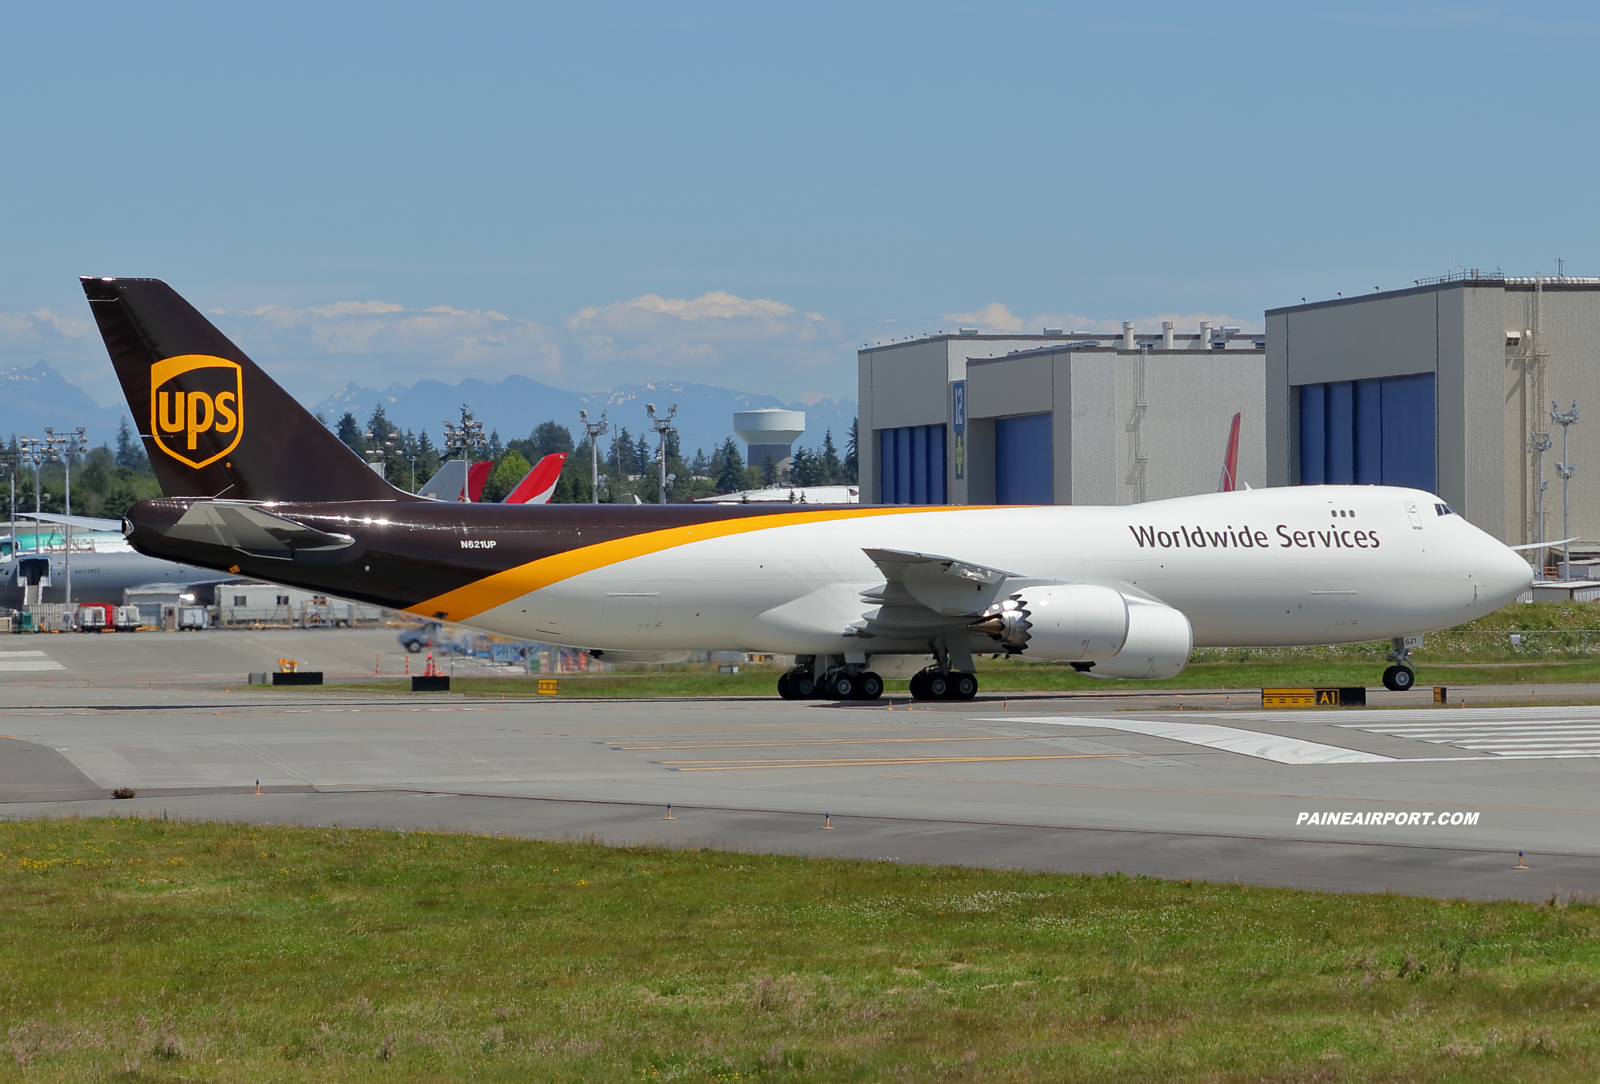 UPS 747-8F N621UP at KPAE Paine Field